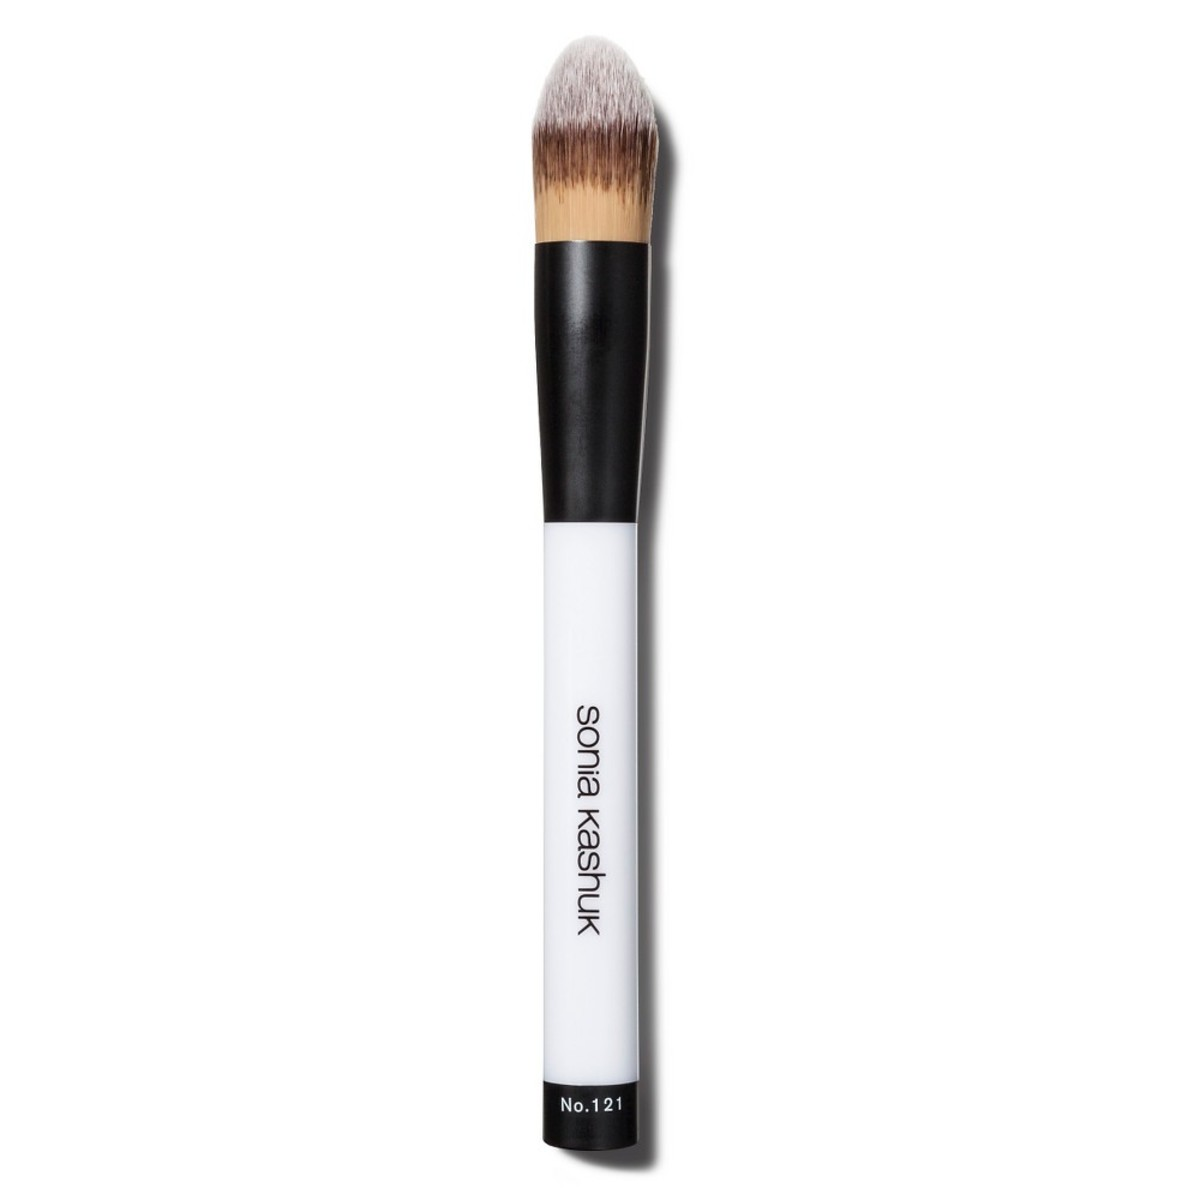 Sonia Kashuk Core Tools Synthetic Pointed Foundation Brush